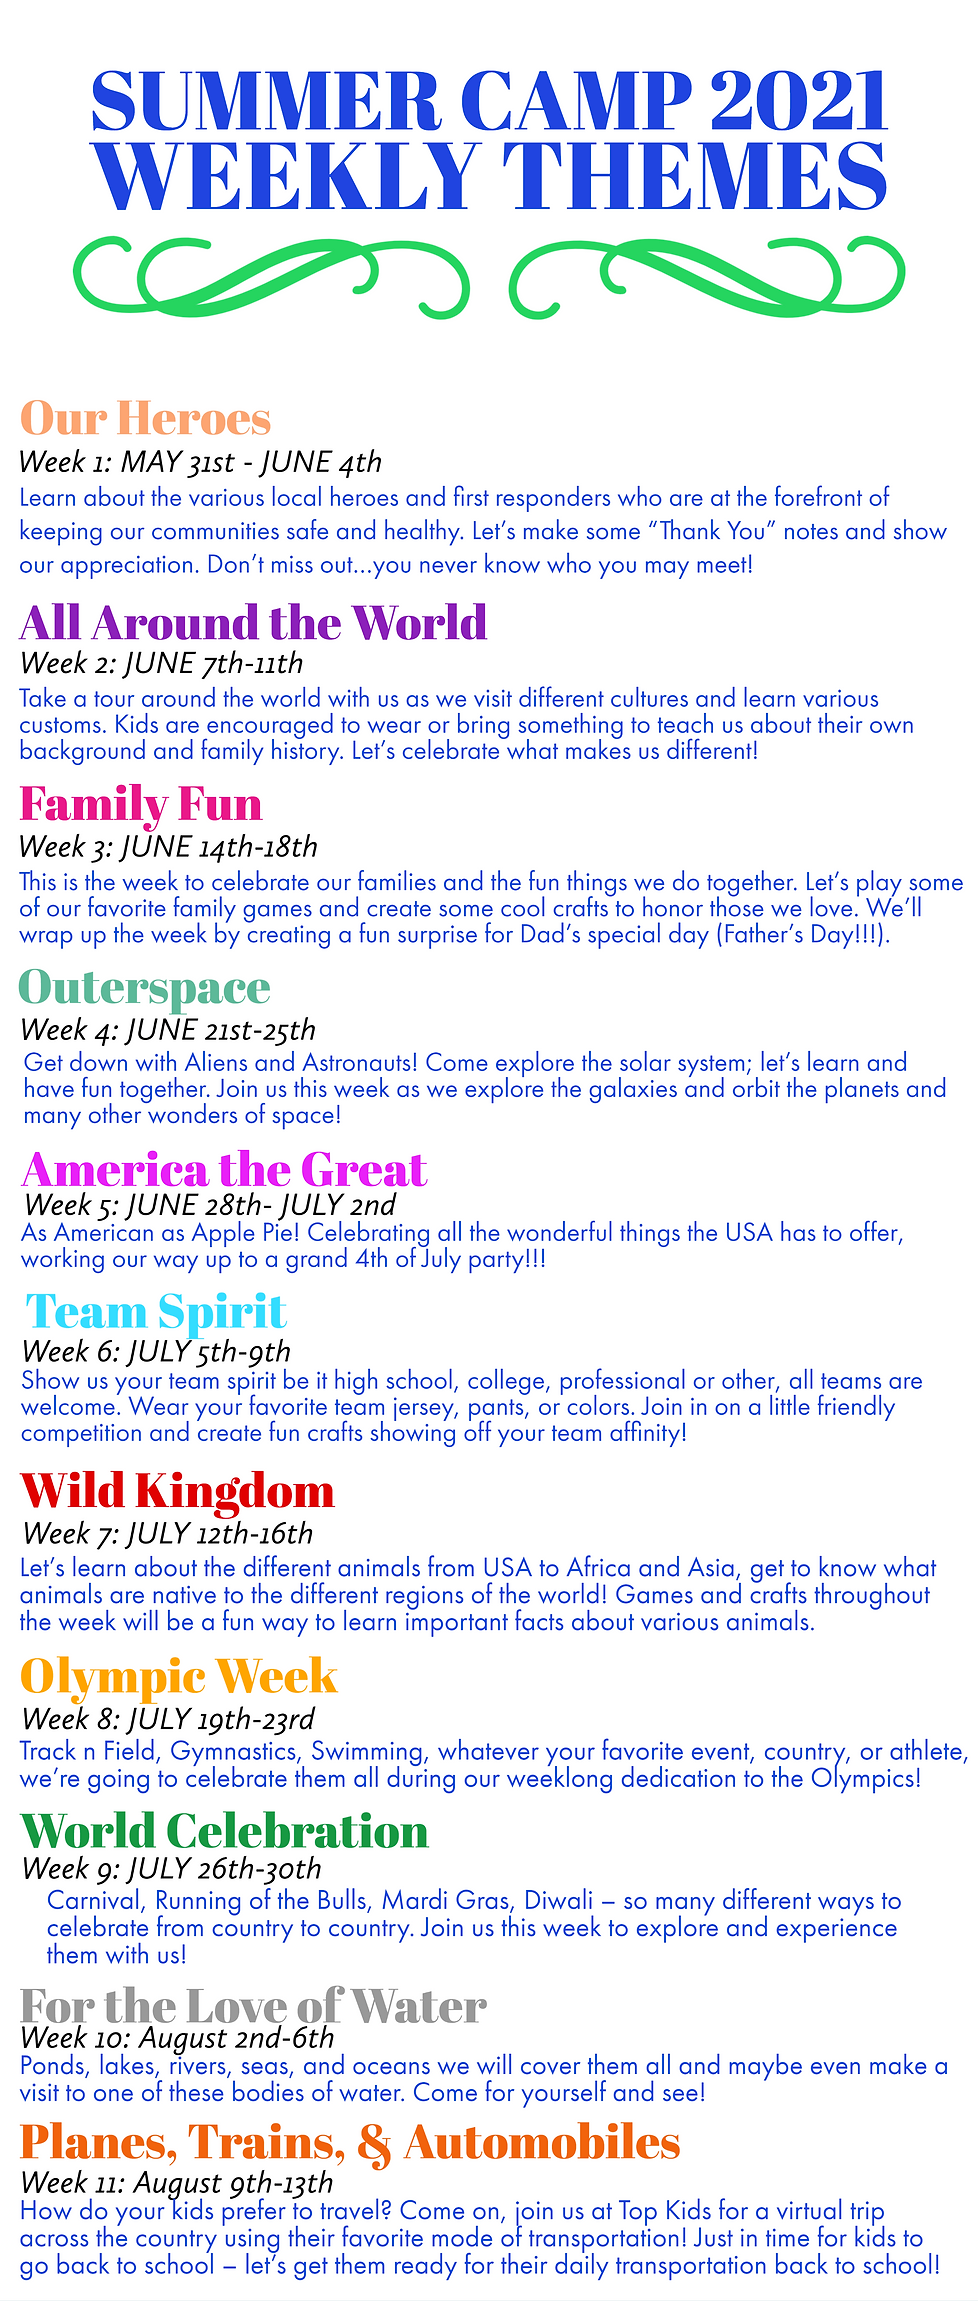 2021 Summer Camp Weekly Themes.png